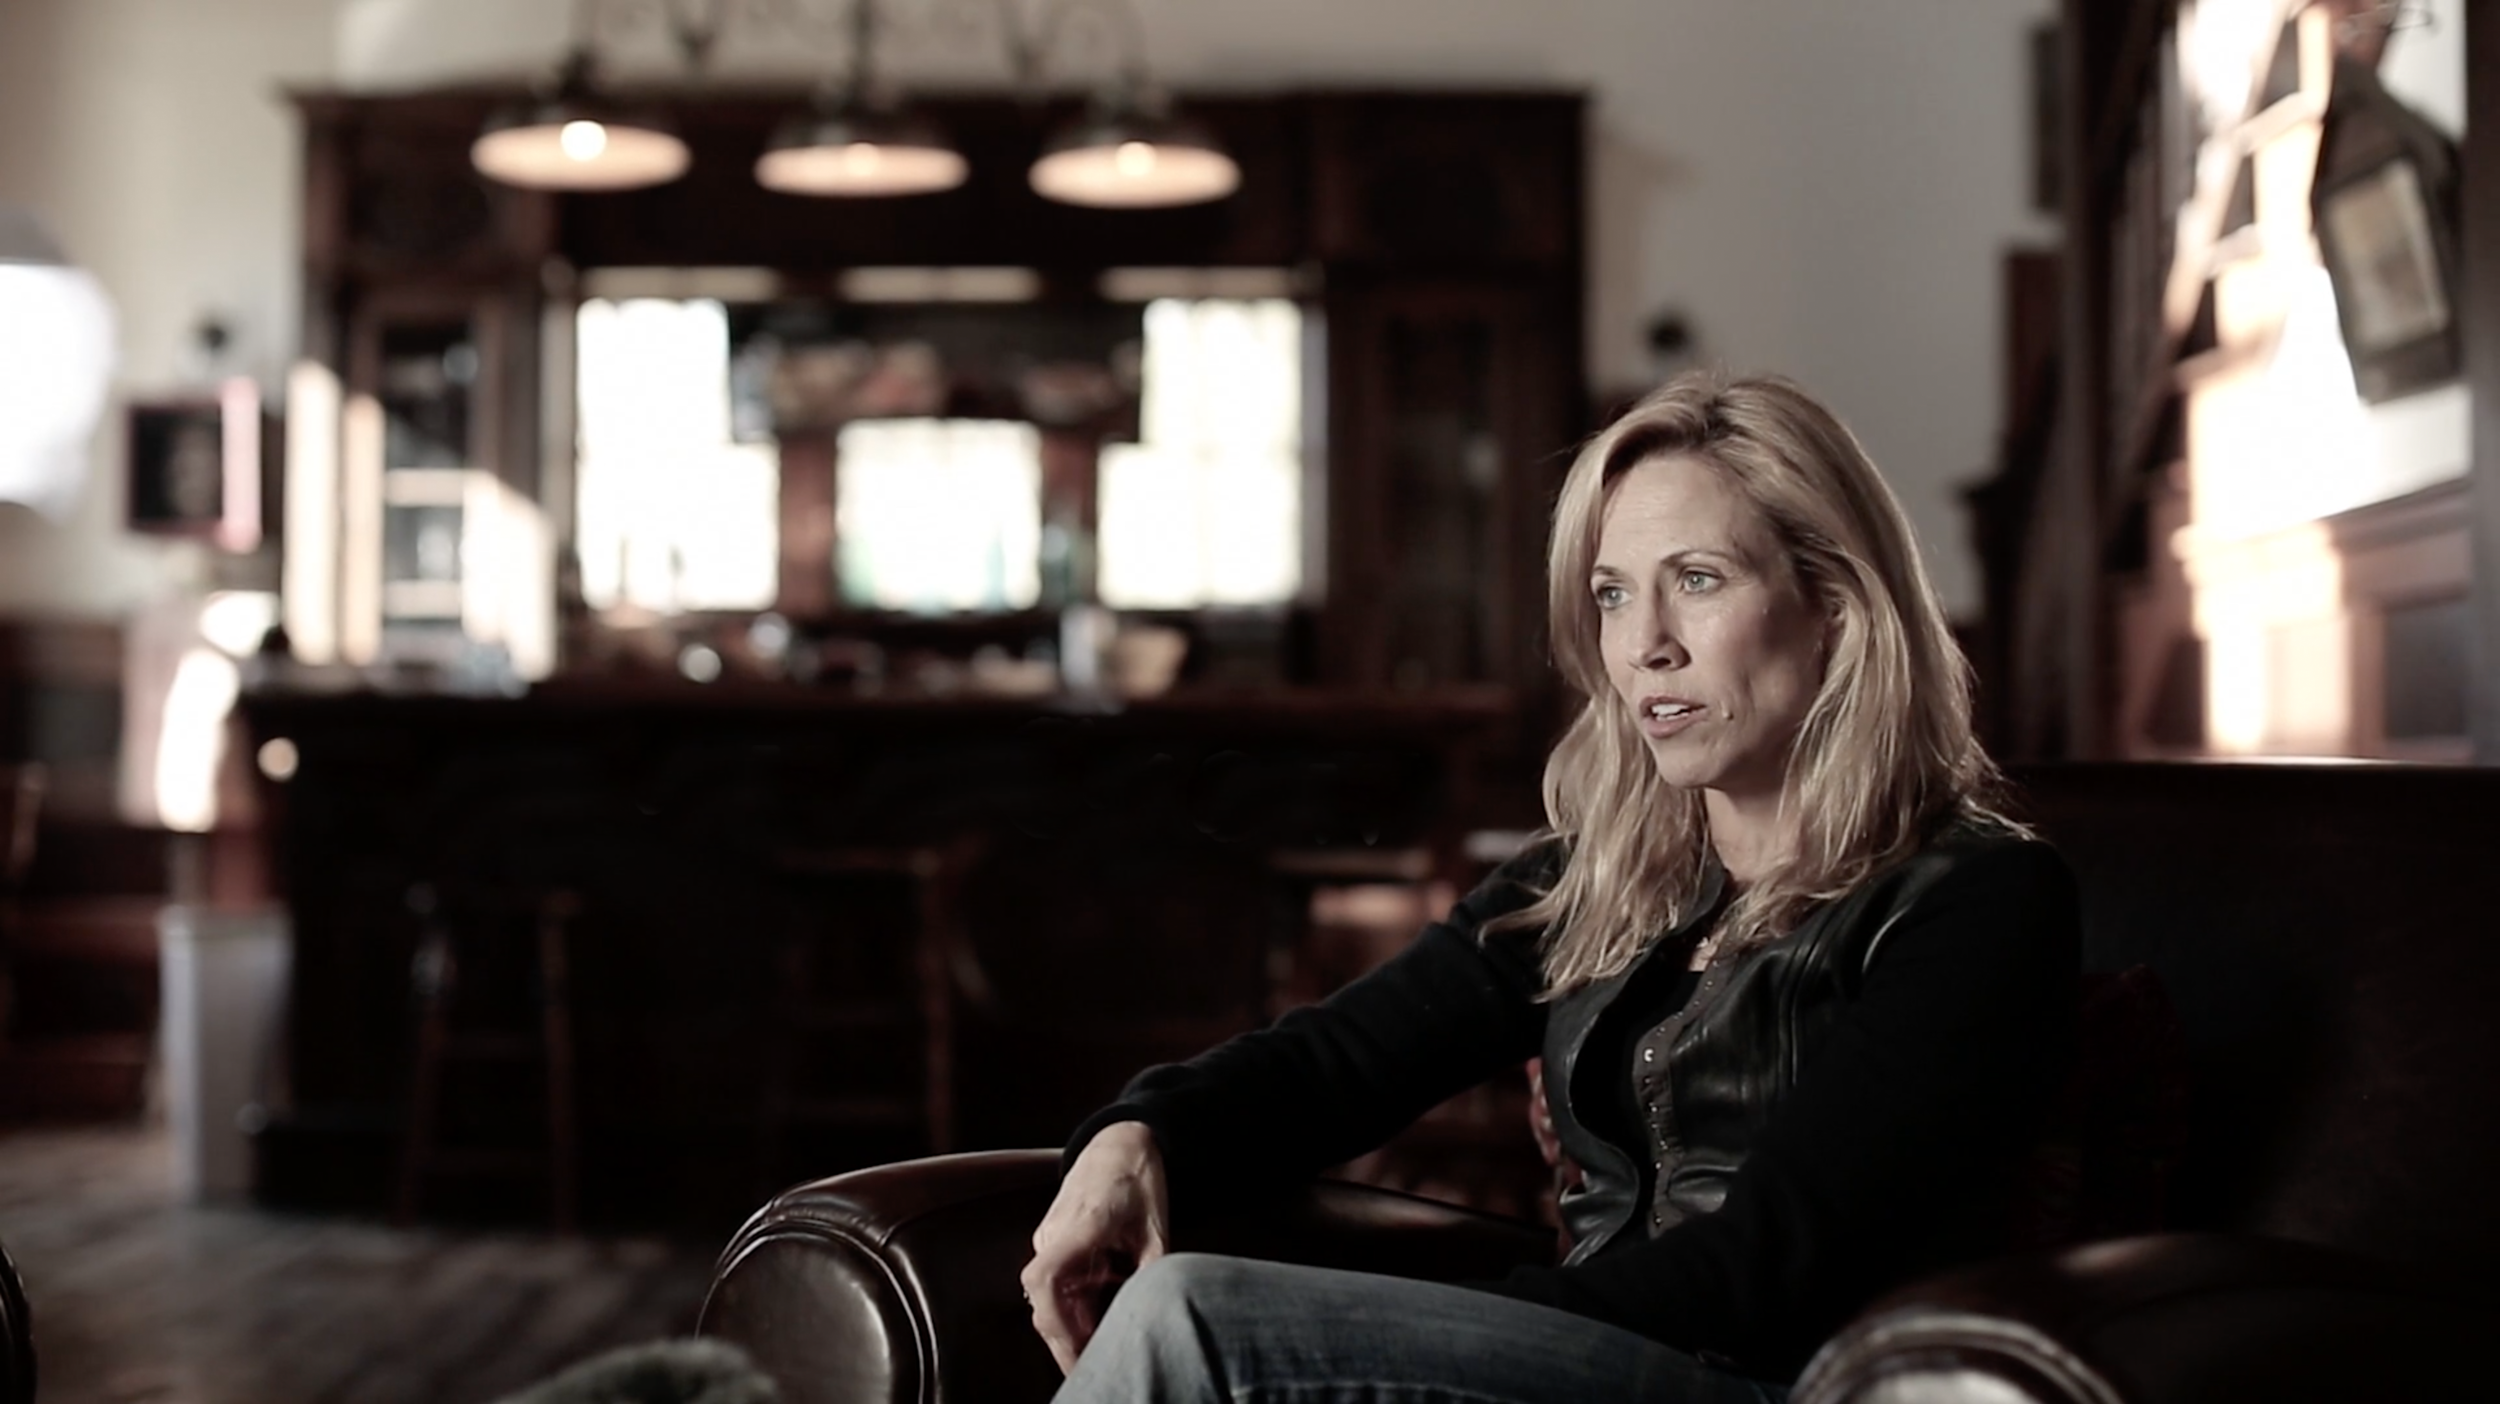 Nine-time Grammy-award winning, Sheryl Crow, considers the original recordings from The 1927 Bristol Sessions to be prerequisite listening for aspiring musicians across all genres.